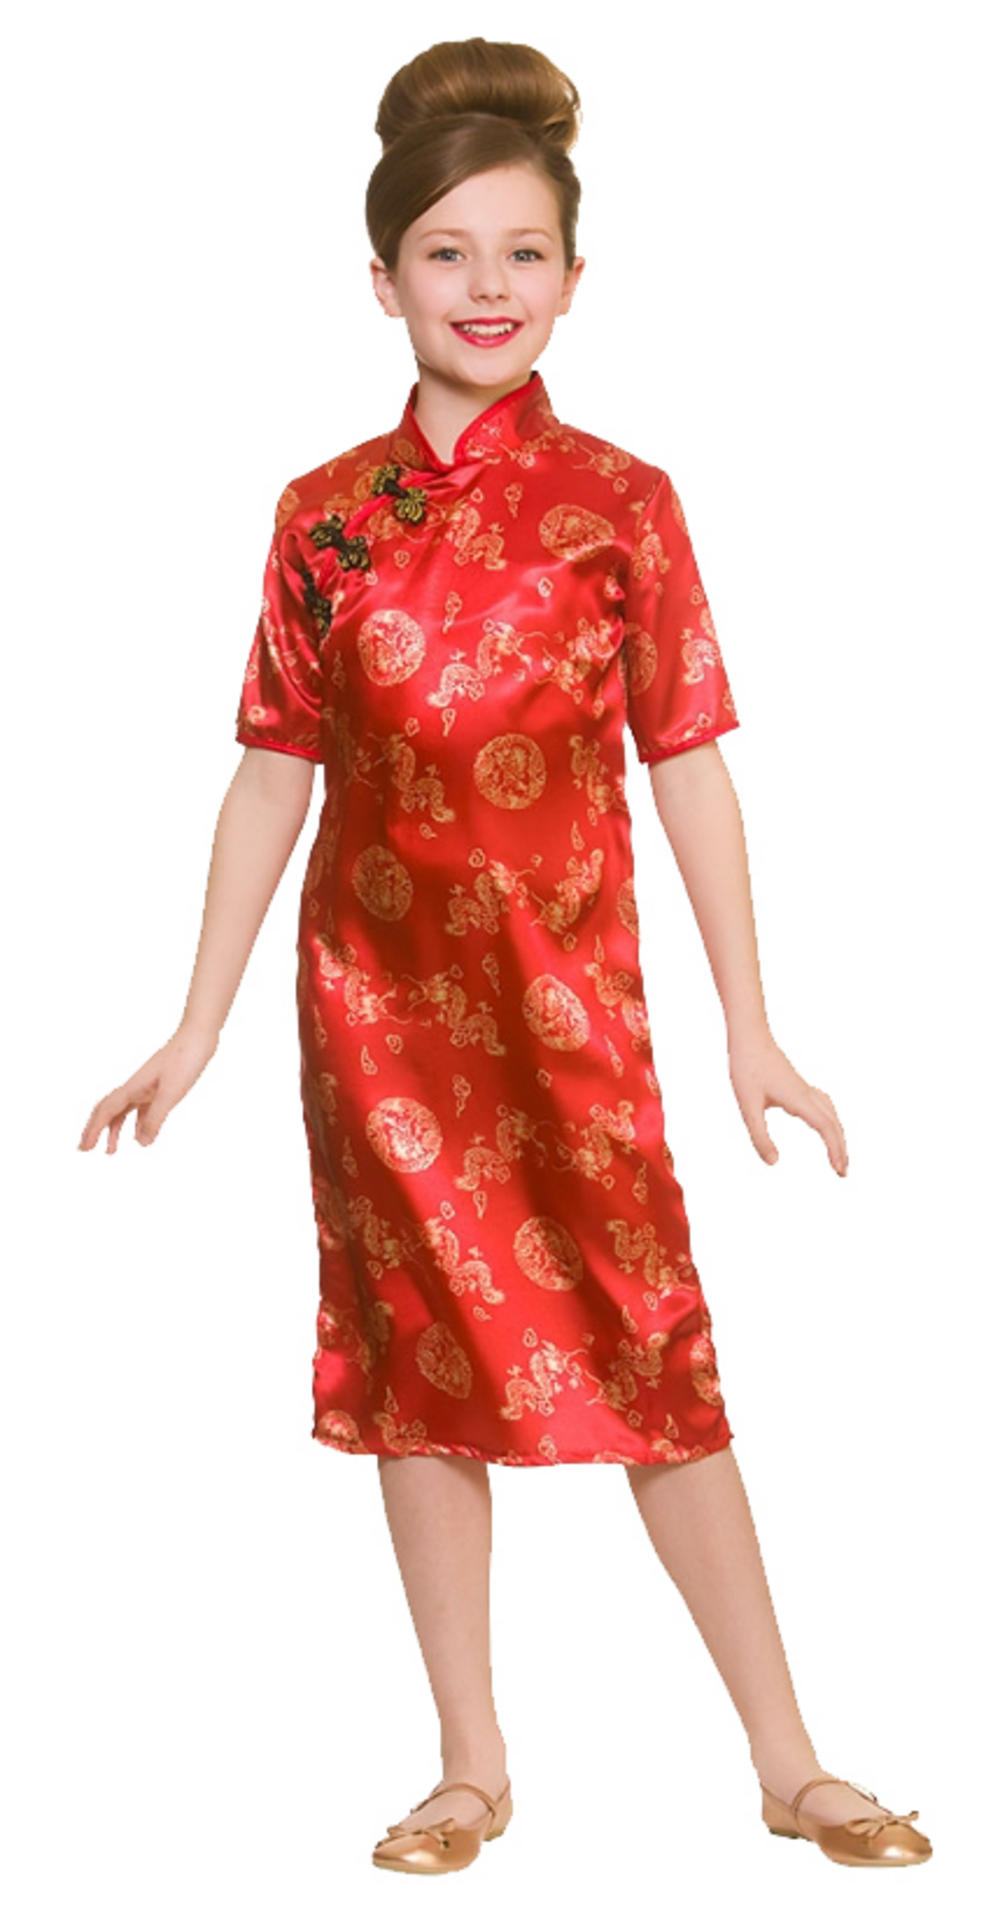 ca8694d9e Chinese Girl Kid's Costume   TV, Book and Film Costumes   Mega Fancy Dress